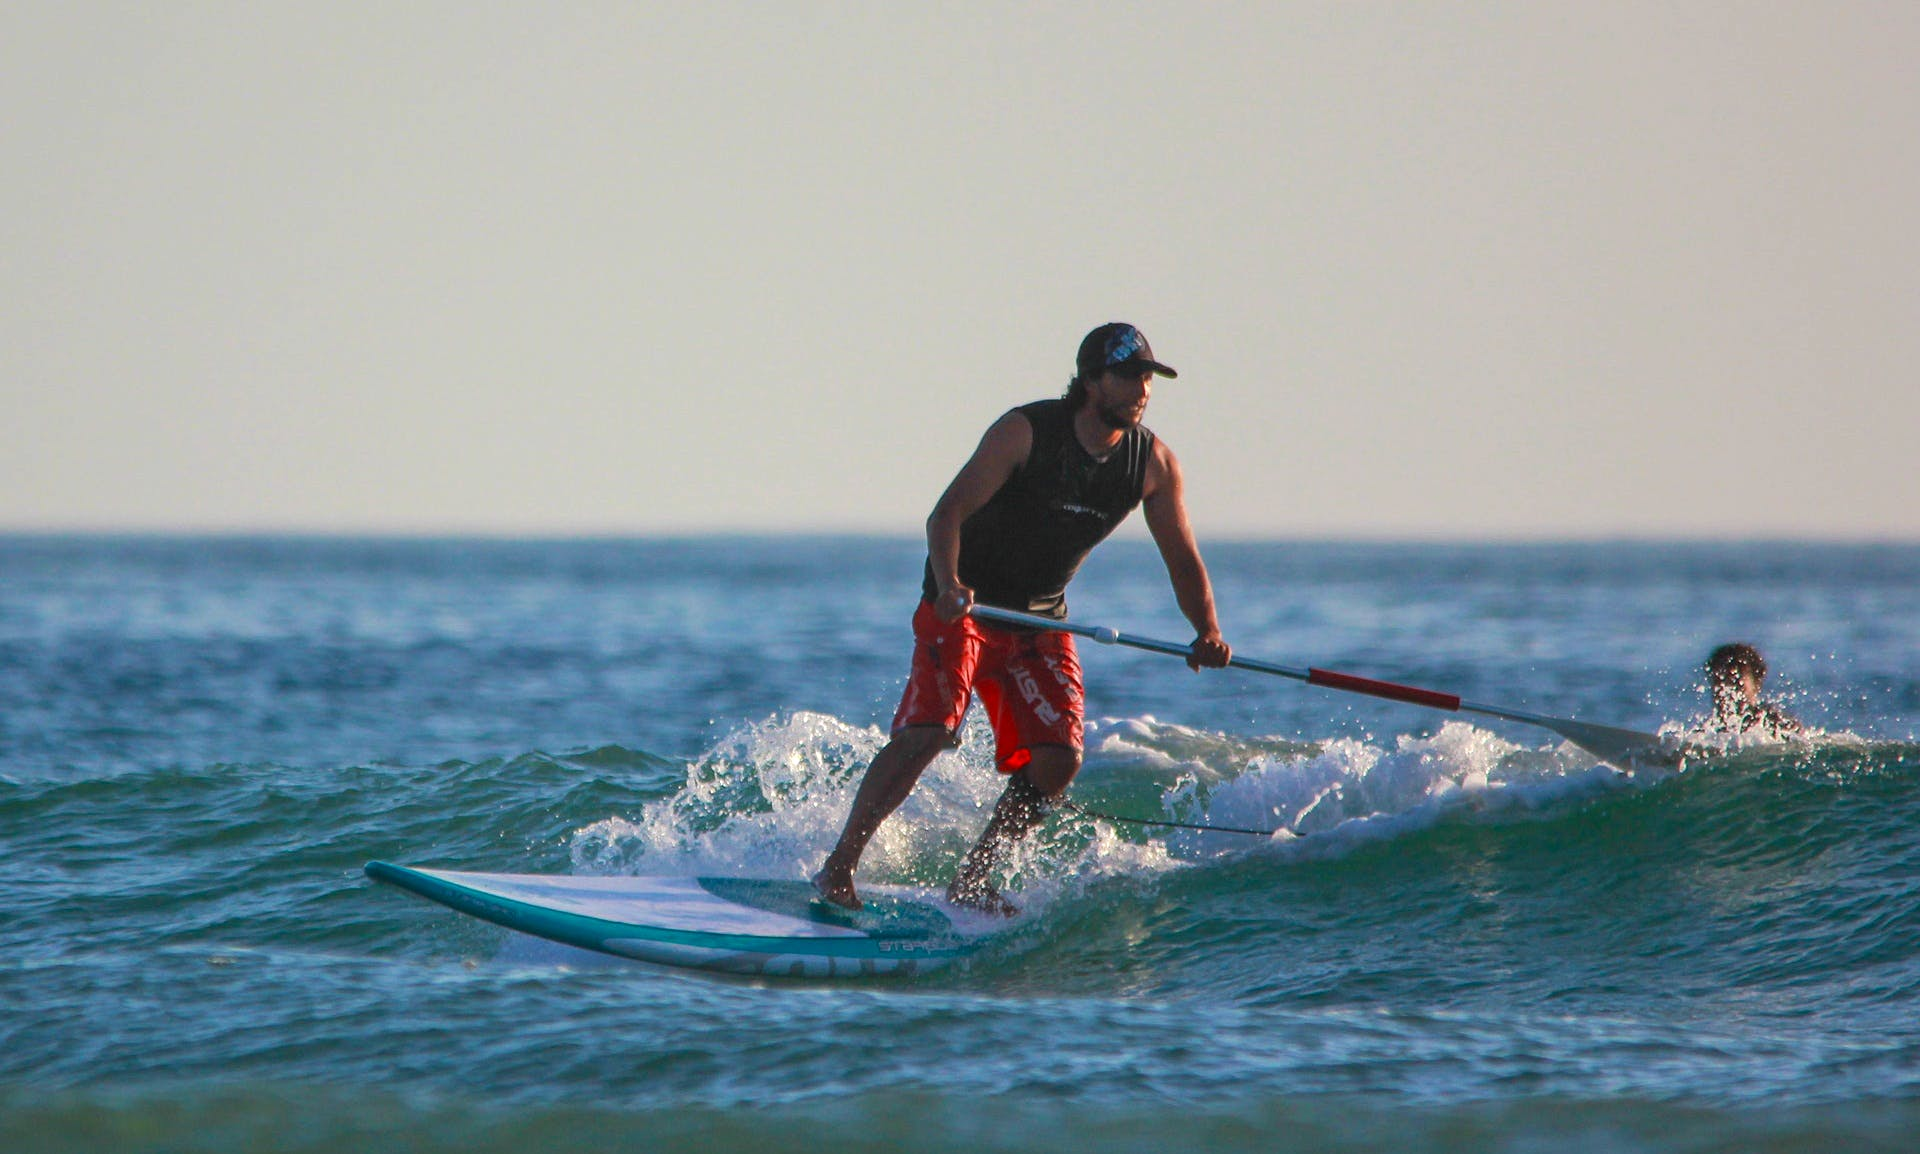 Paddleboard Lesson from Qualified Instructors and Rentals in Essaouira, Morocco